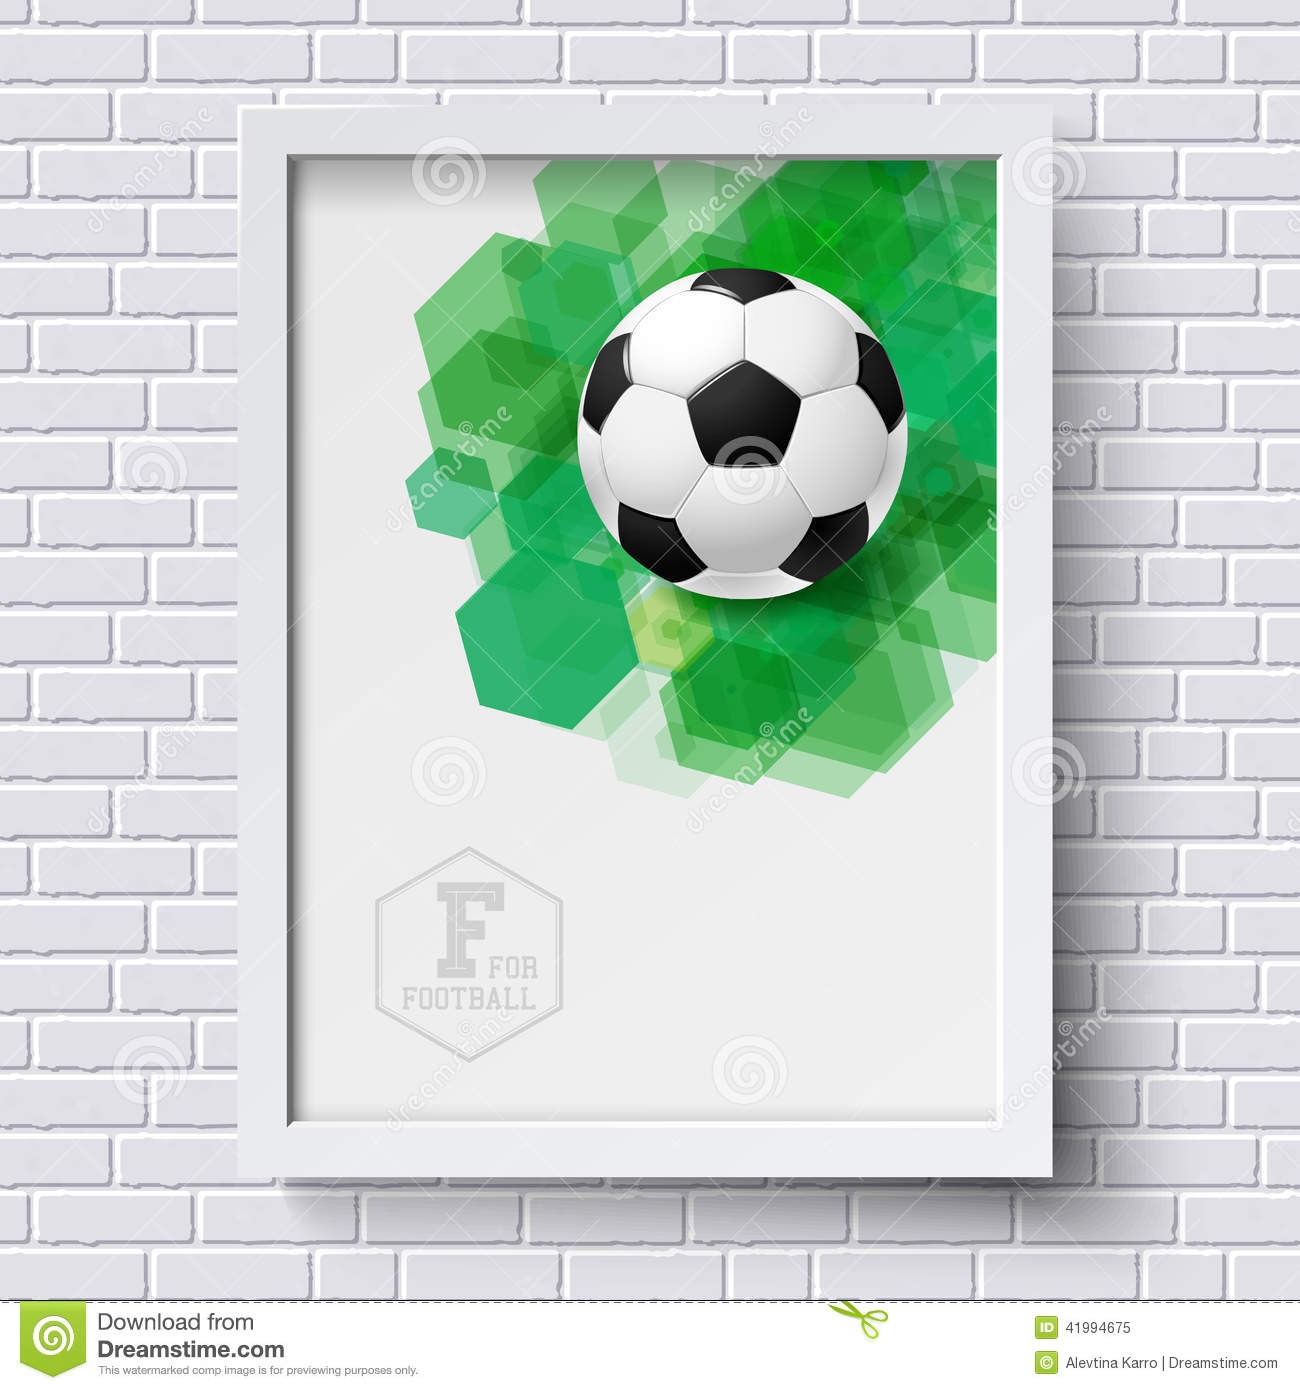 Soccer frame border stock illustrations 531 soccer frame border abstract soccer poster image frame on white brick wall with foo tball poster jeuxipadfo Images